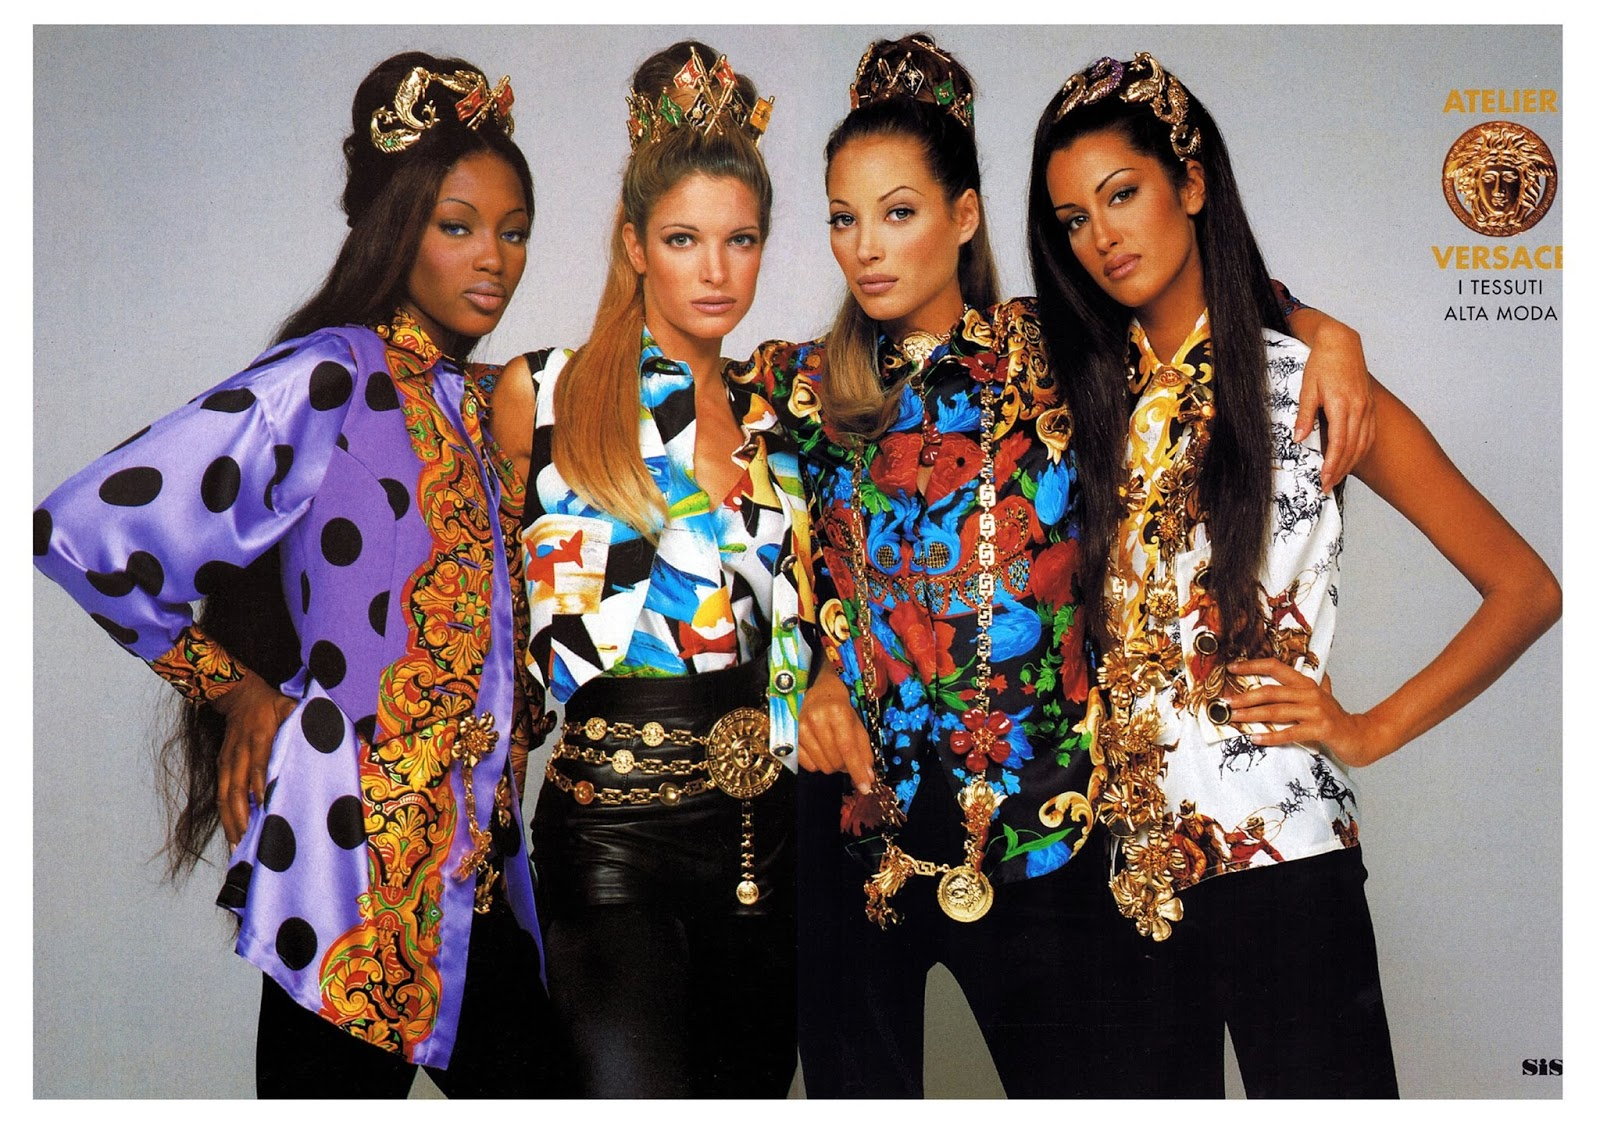 Eniwhere Fashion - Top Models 90's